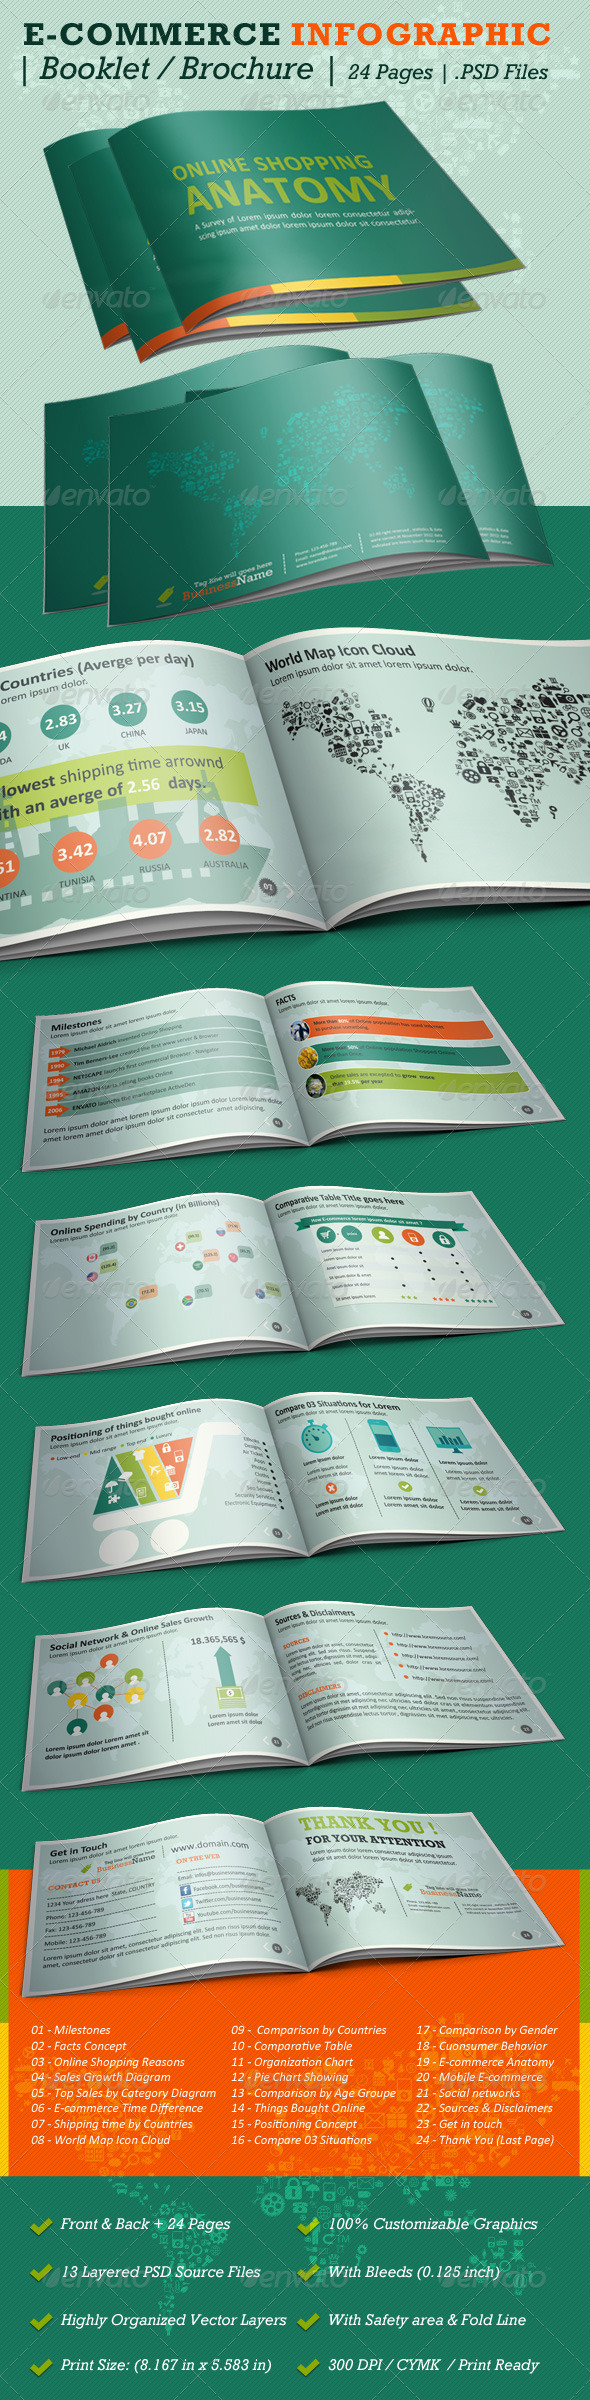 E-commerce Infographic Booklet - 24 Pages - Informational Brochures